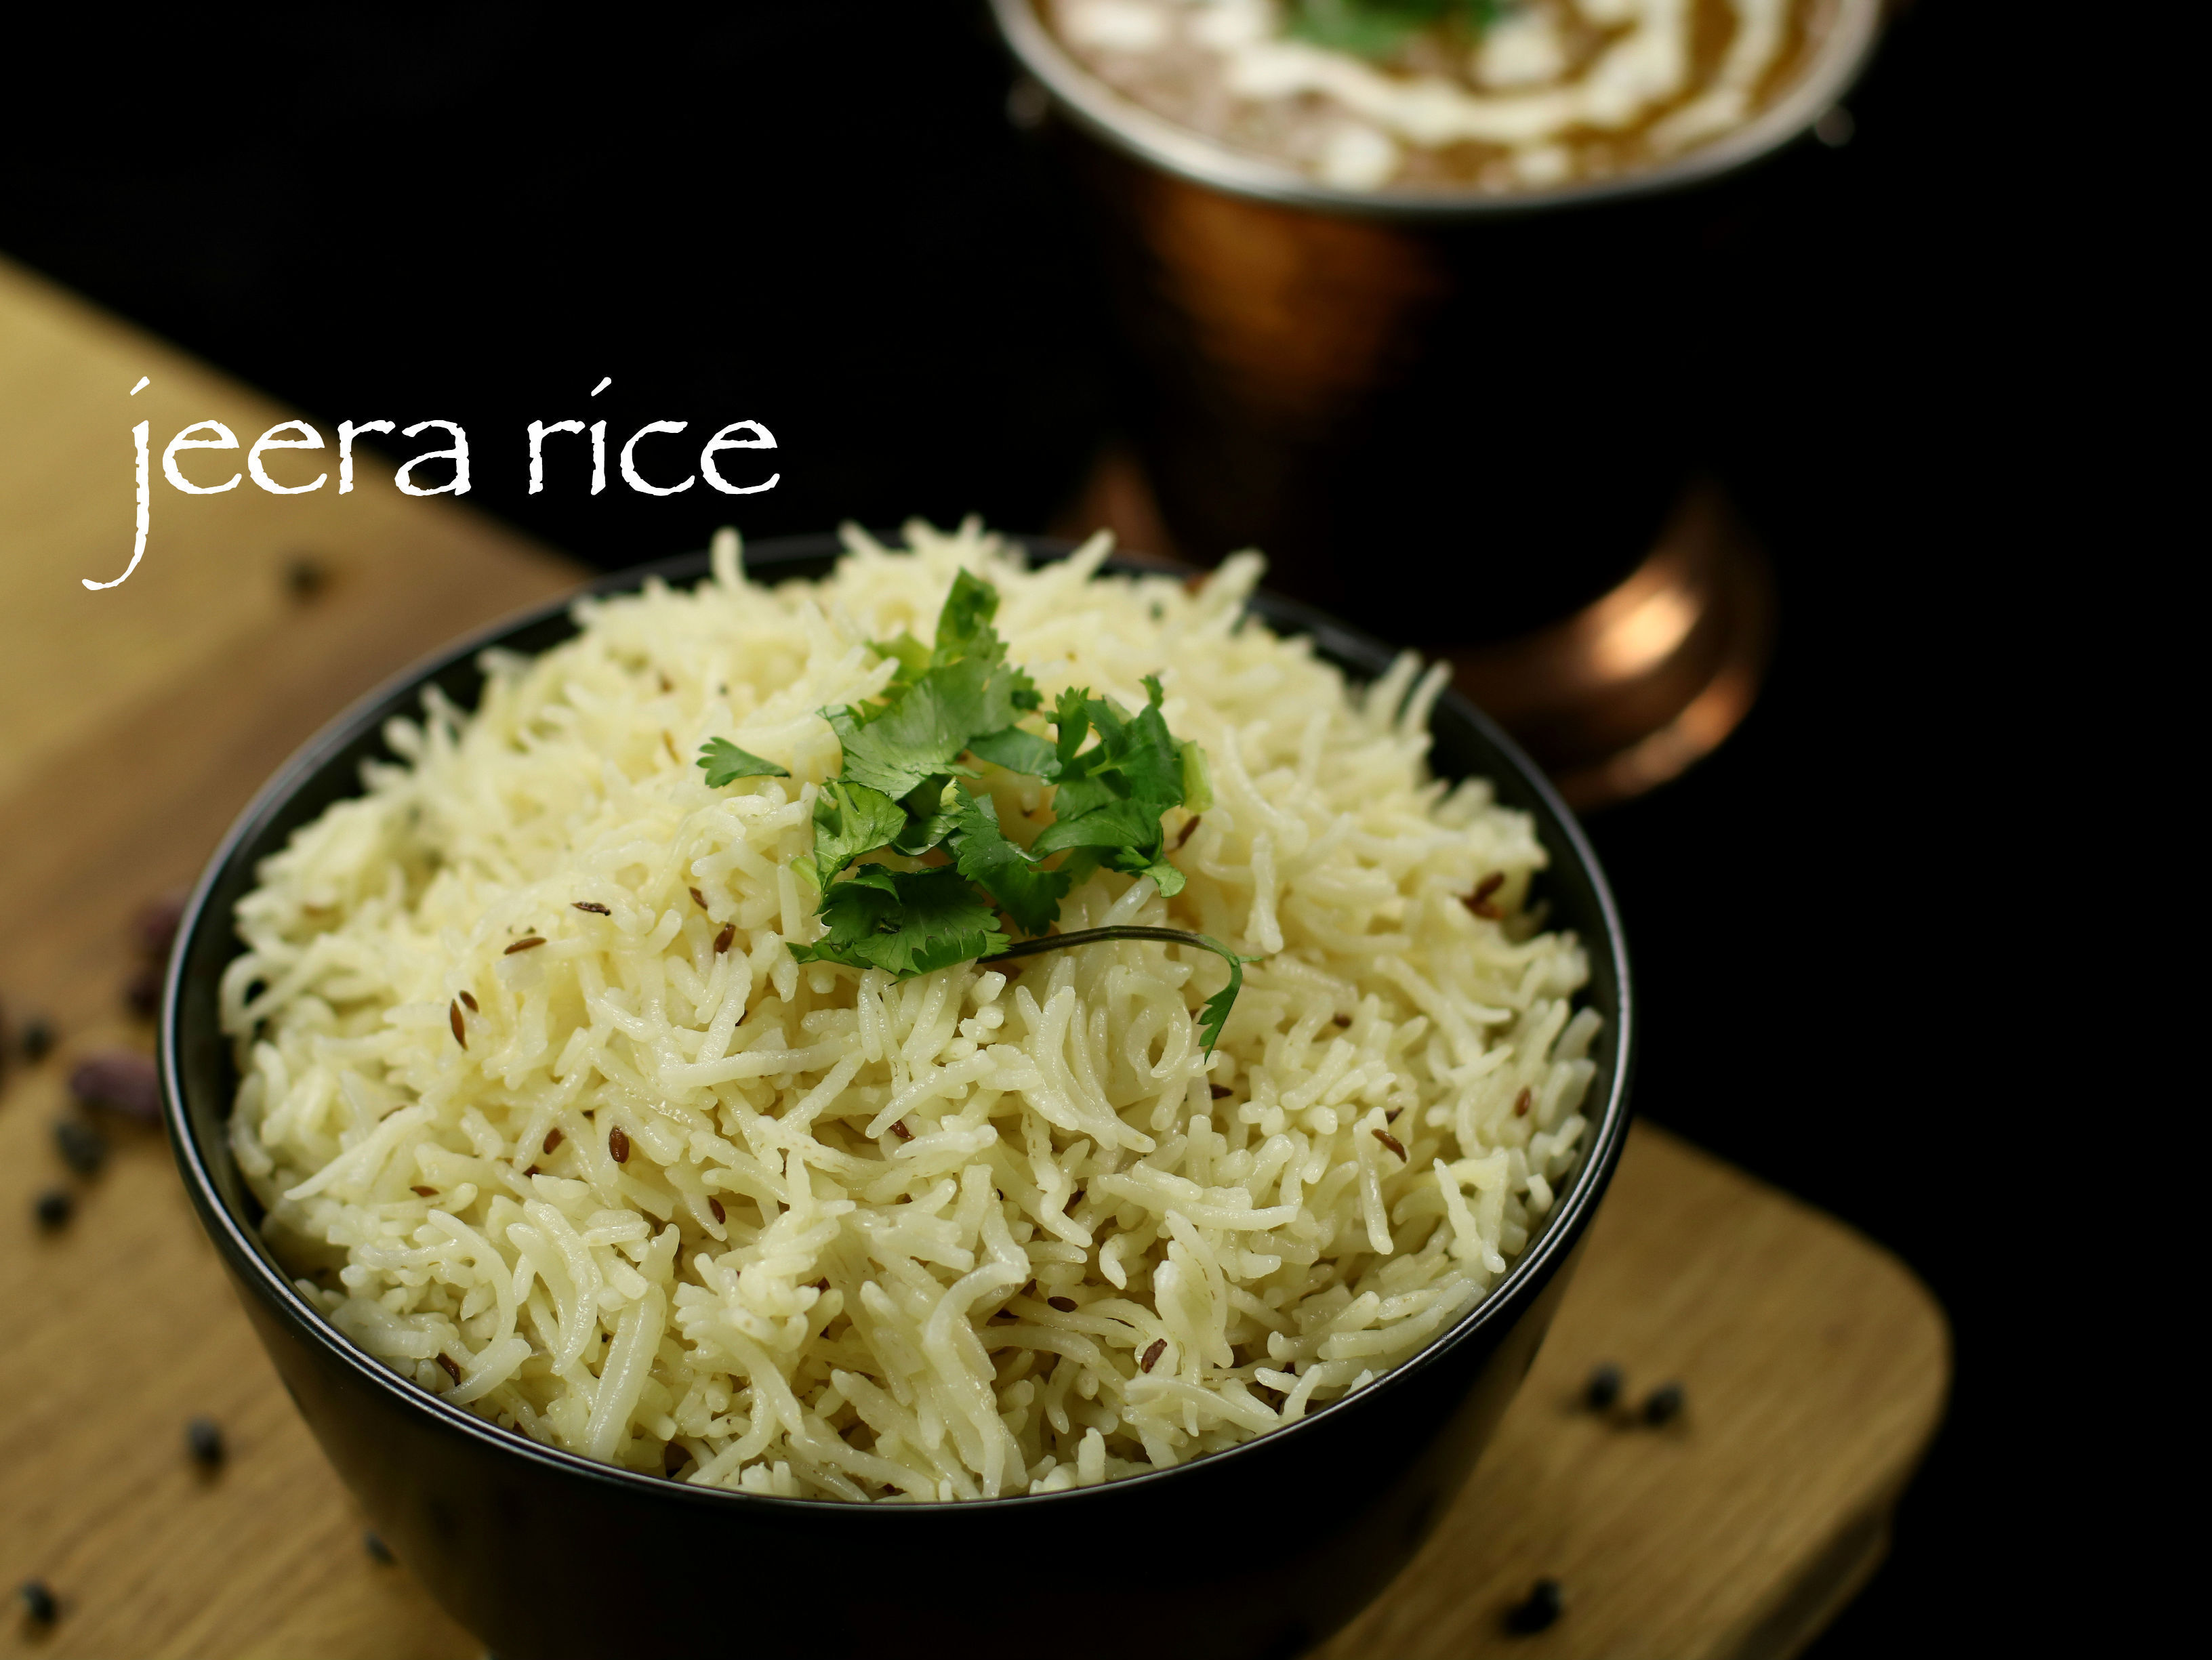 jeera rice recipe | jeera pulao recipe | steamed zeera rice